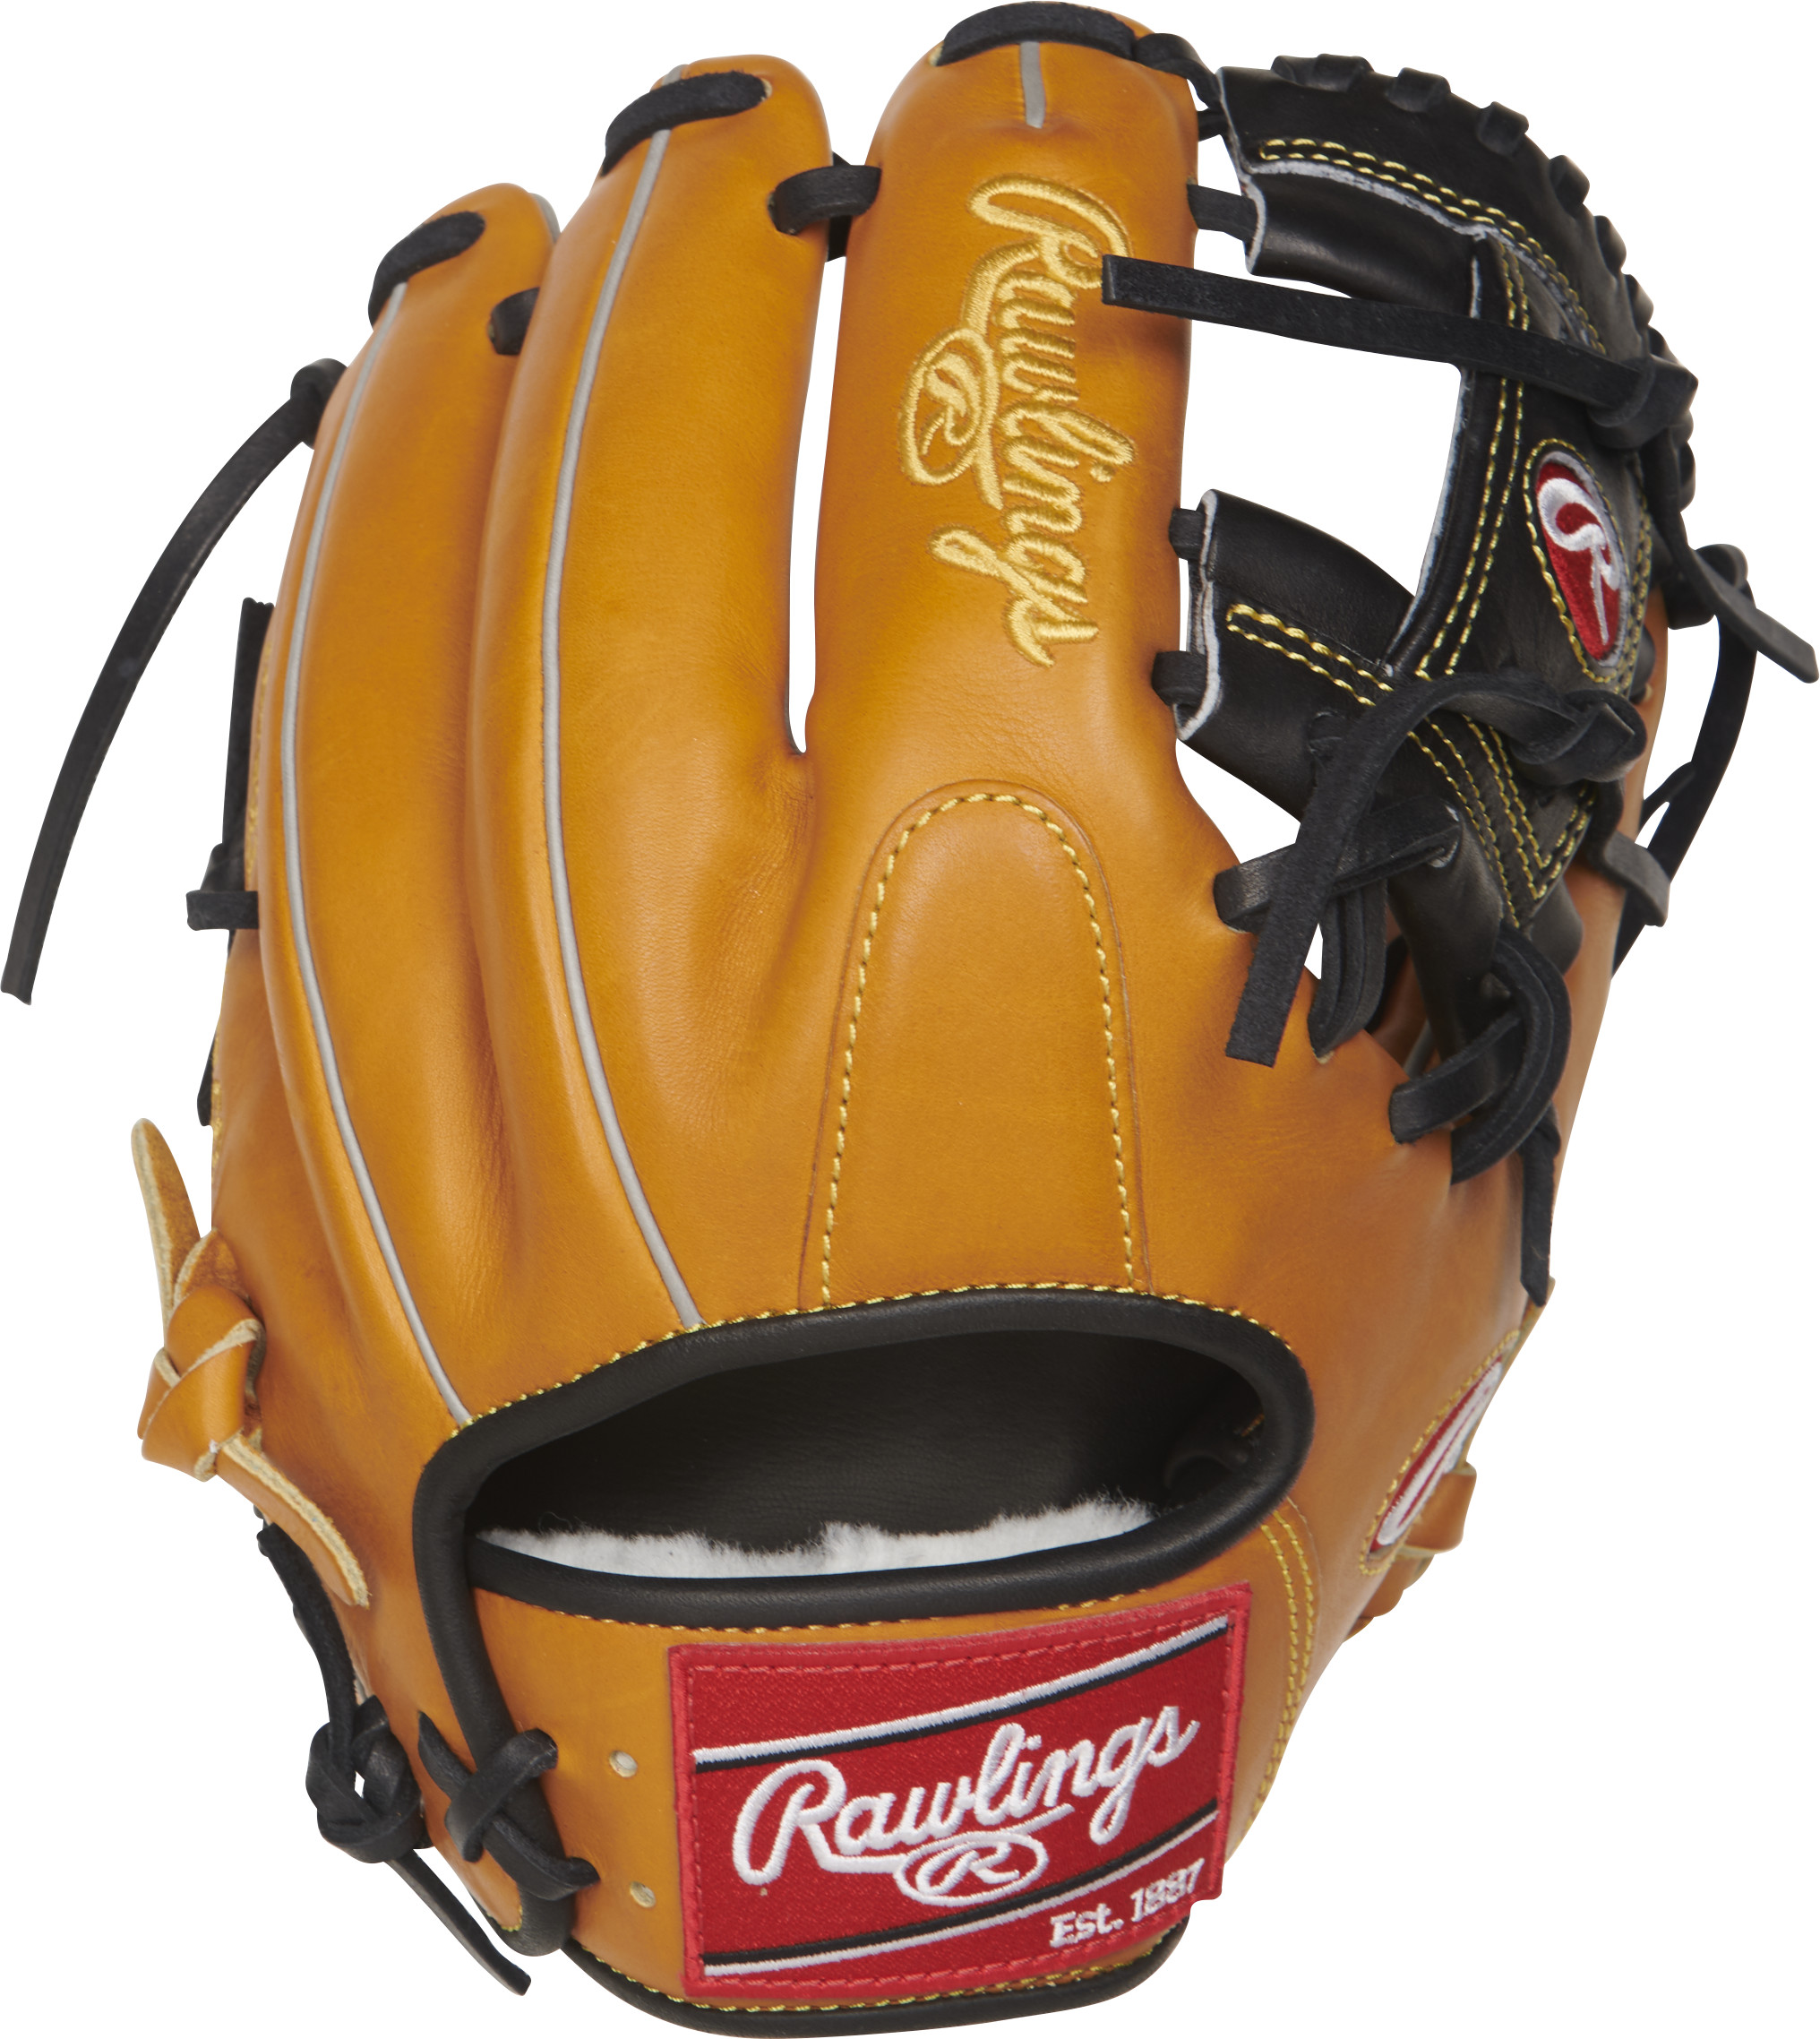 http://www.bestbatdeals.com/images/gloves/rawlings/PROS204-2RTB-2.jpg